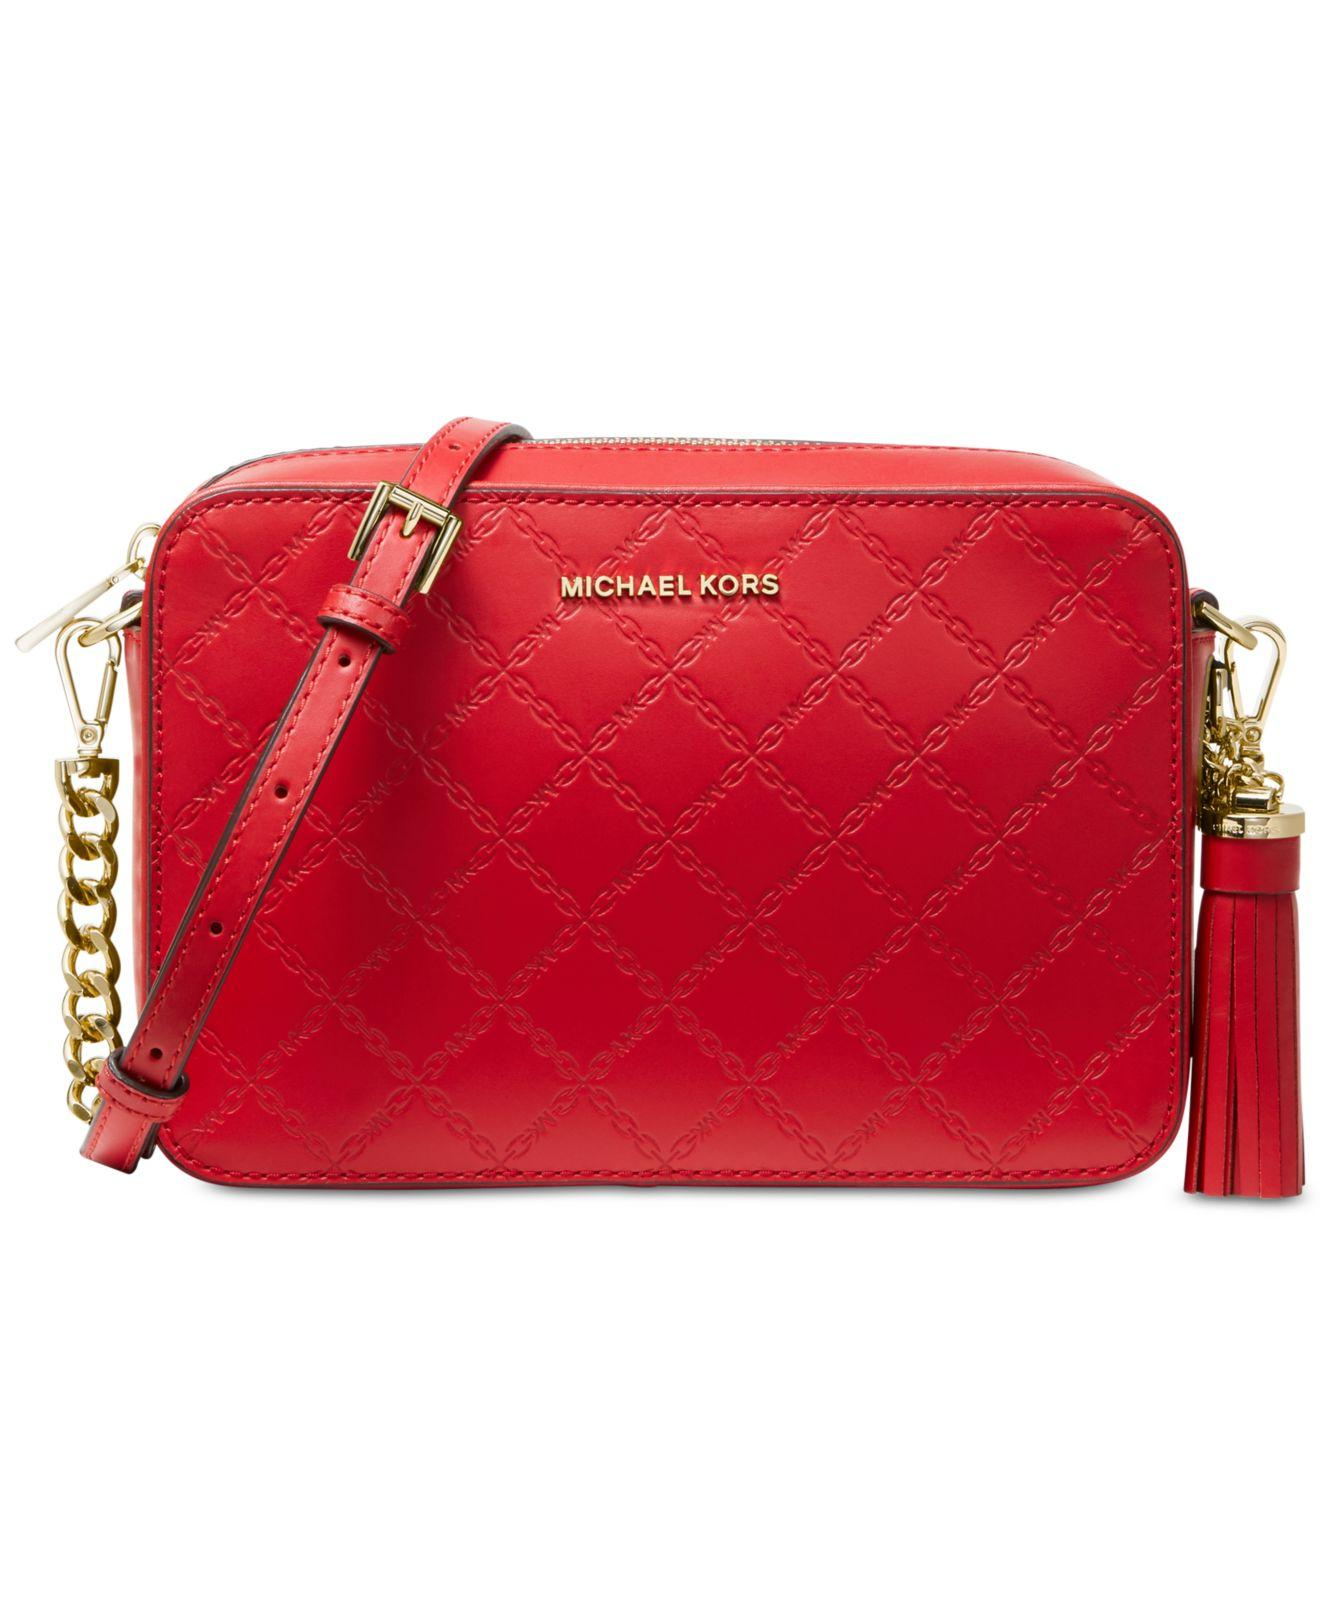 0702e7a985c4 MICHAEL Michael Kors Medium Leather Crossbody Camera Bag in Red - Lyst